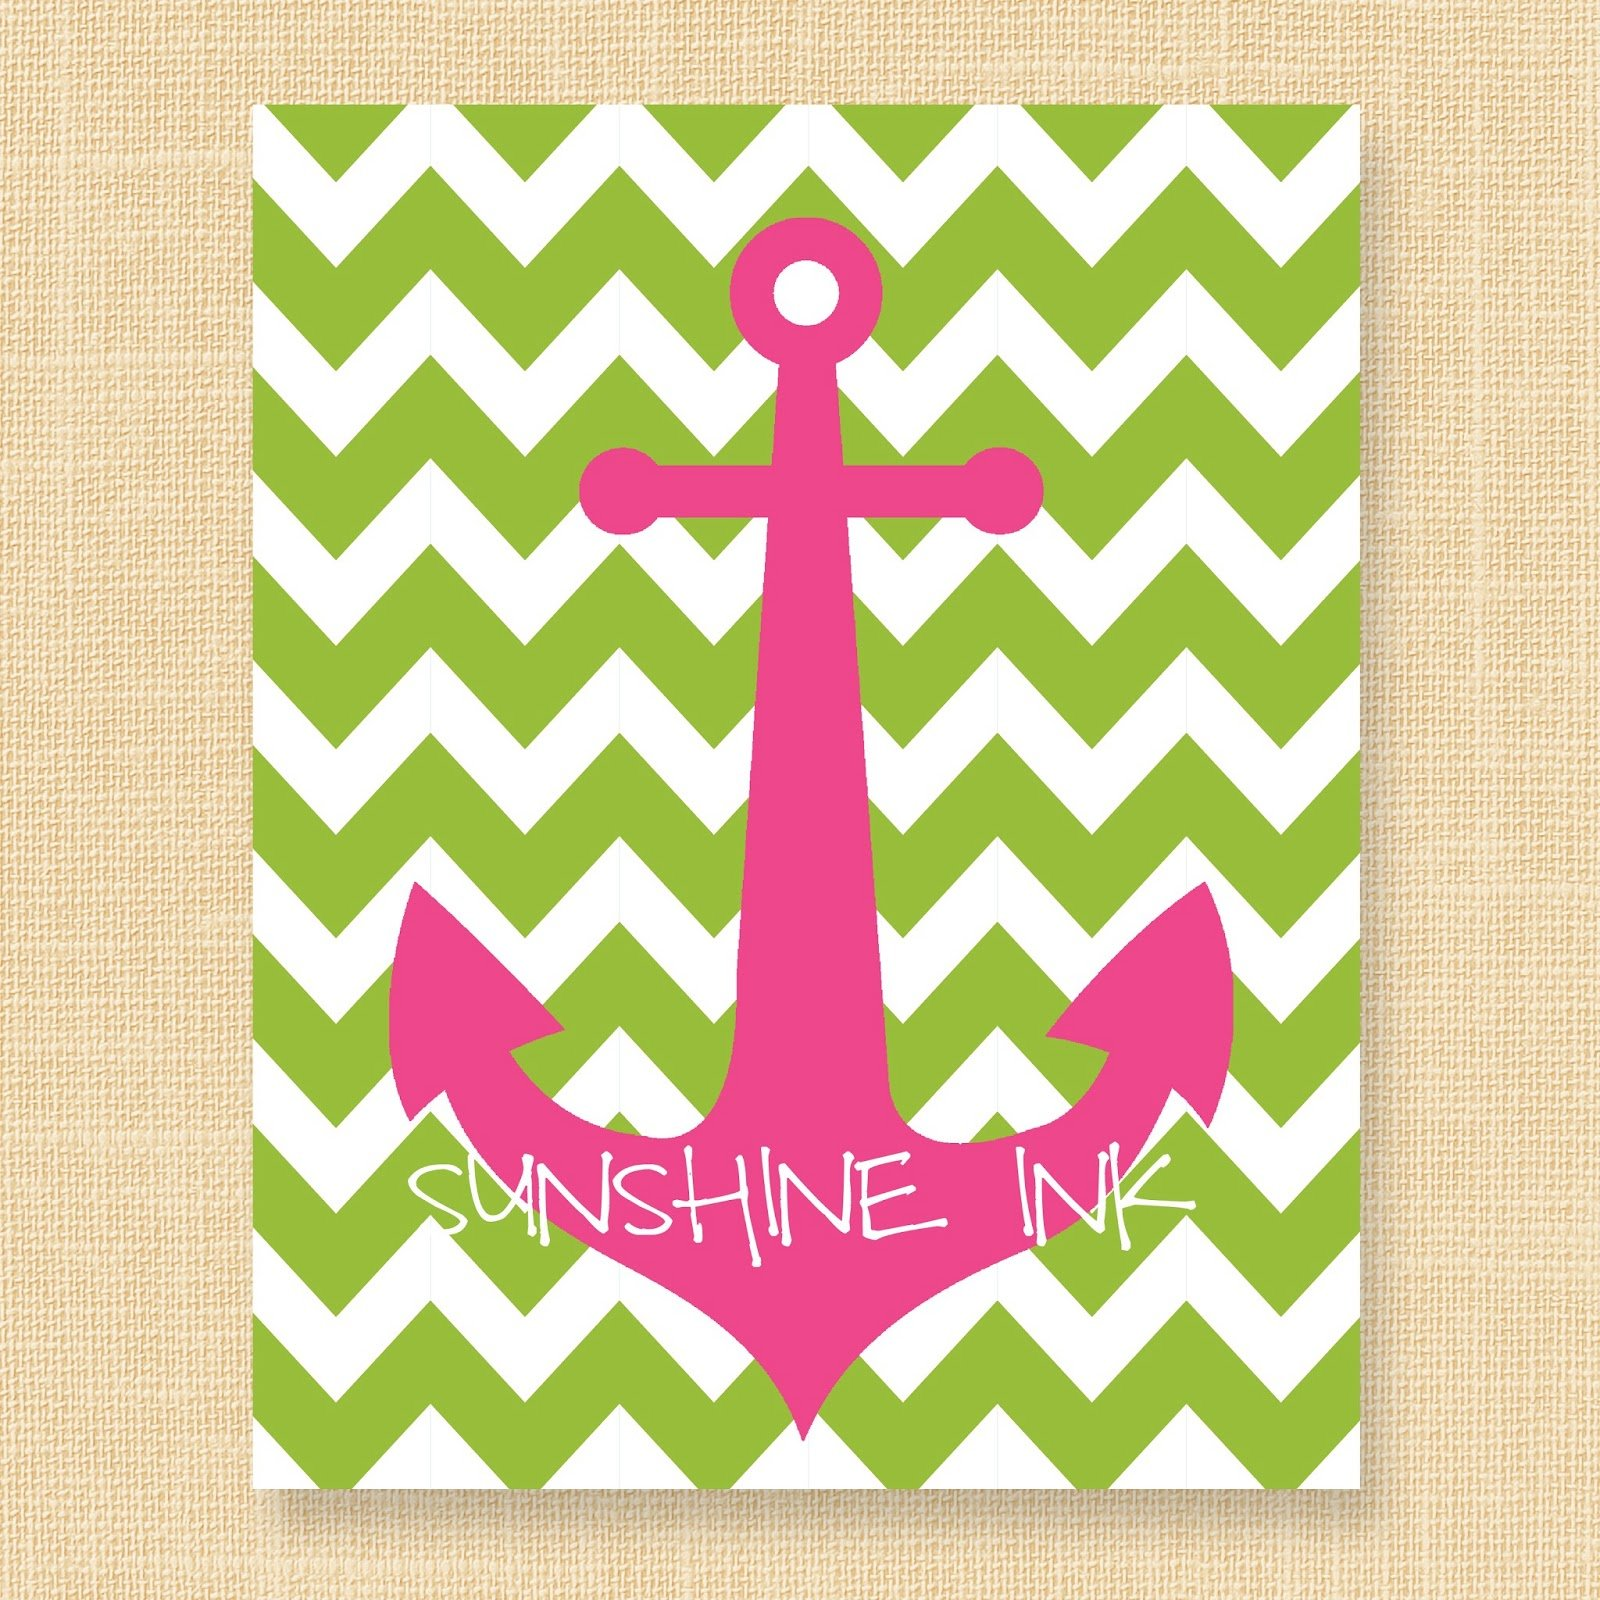 Cute Chevron Anchor Backgrounds Images Pictures   Becuo 1600x1600